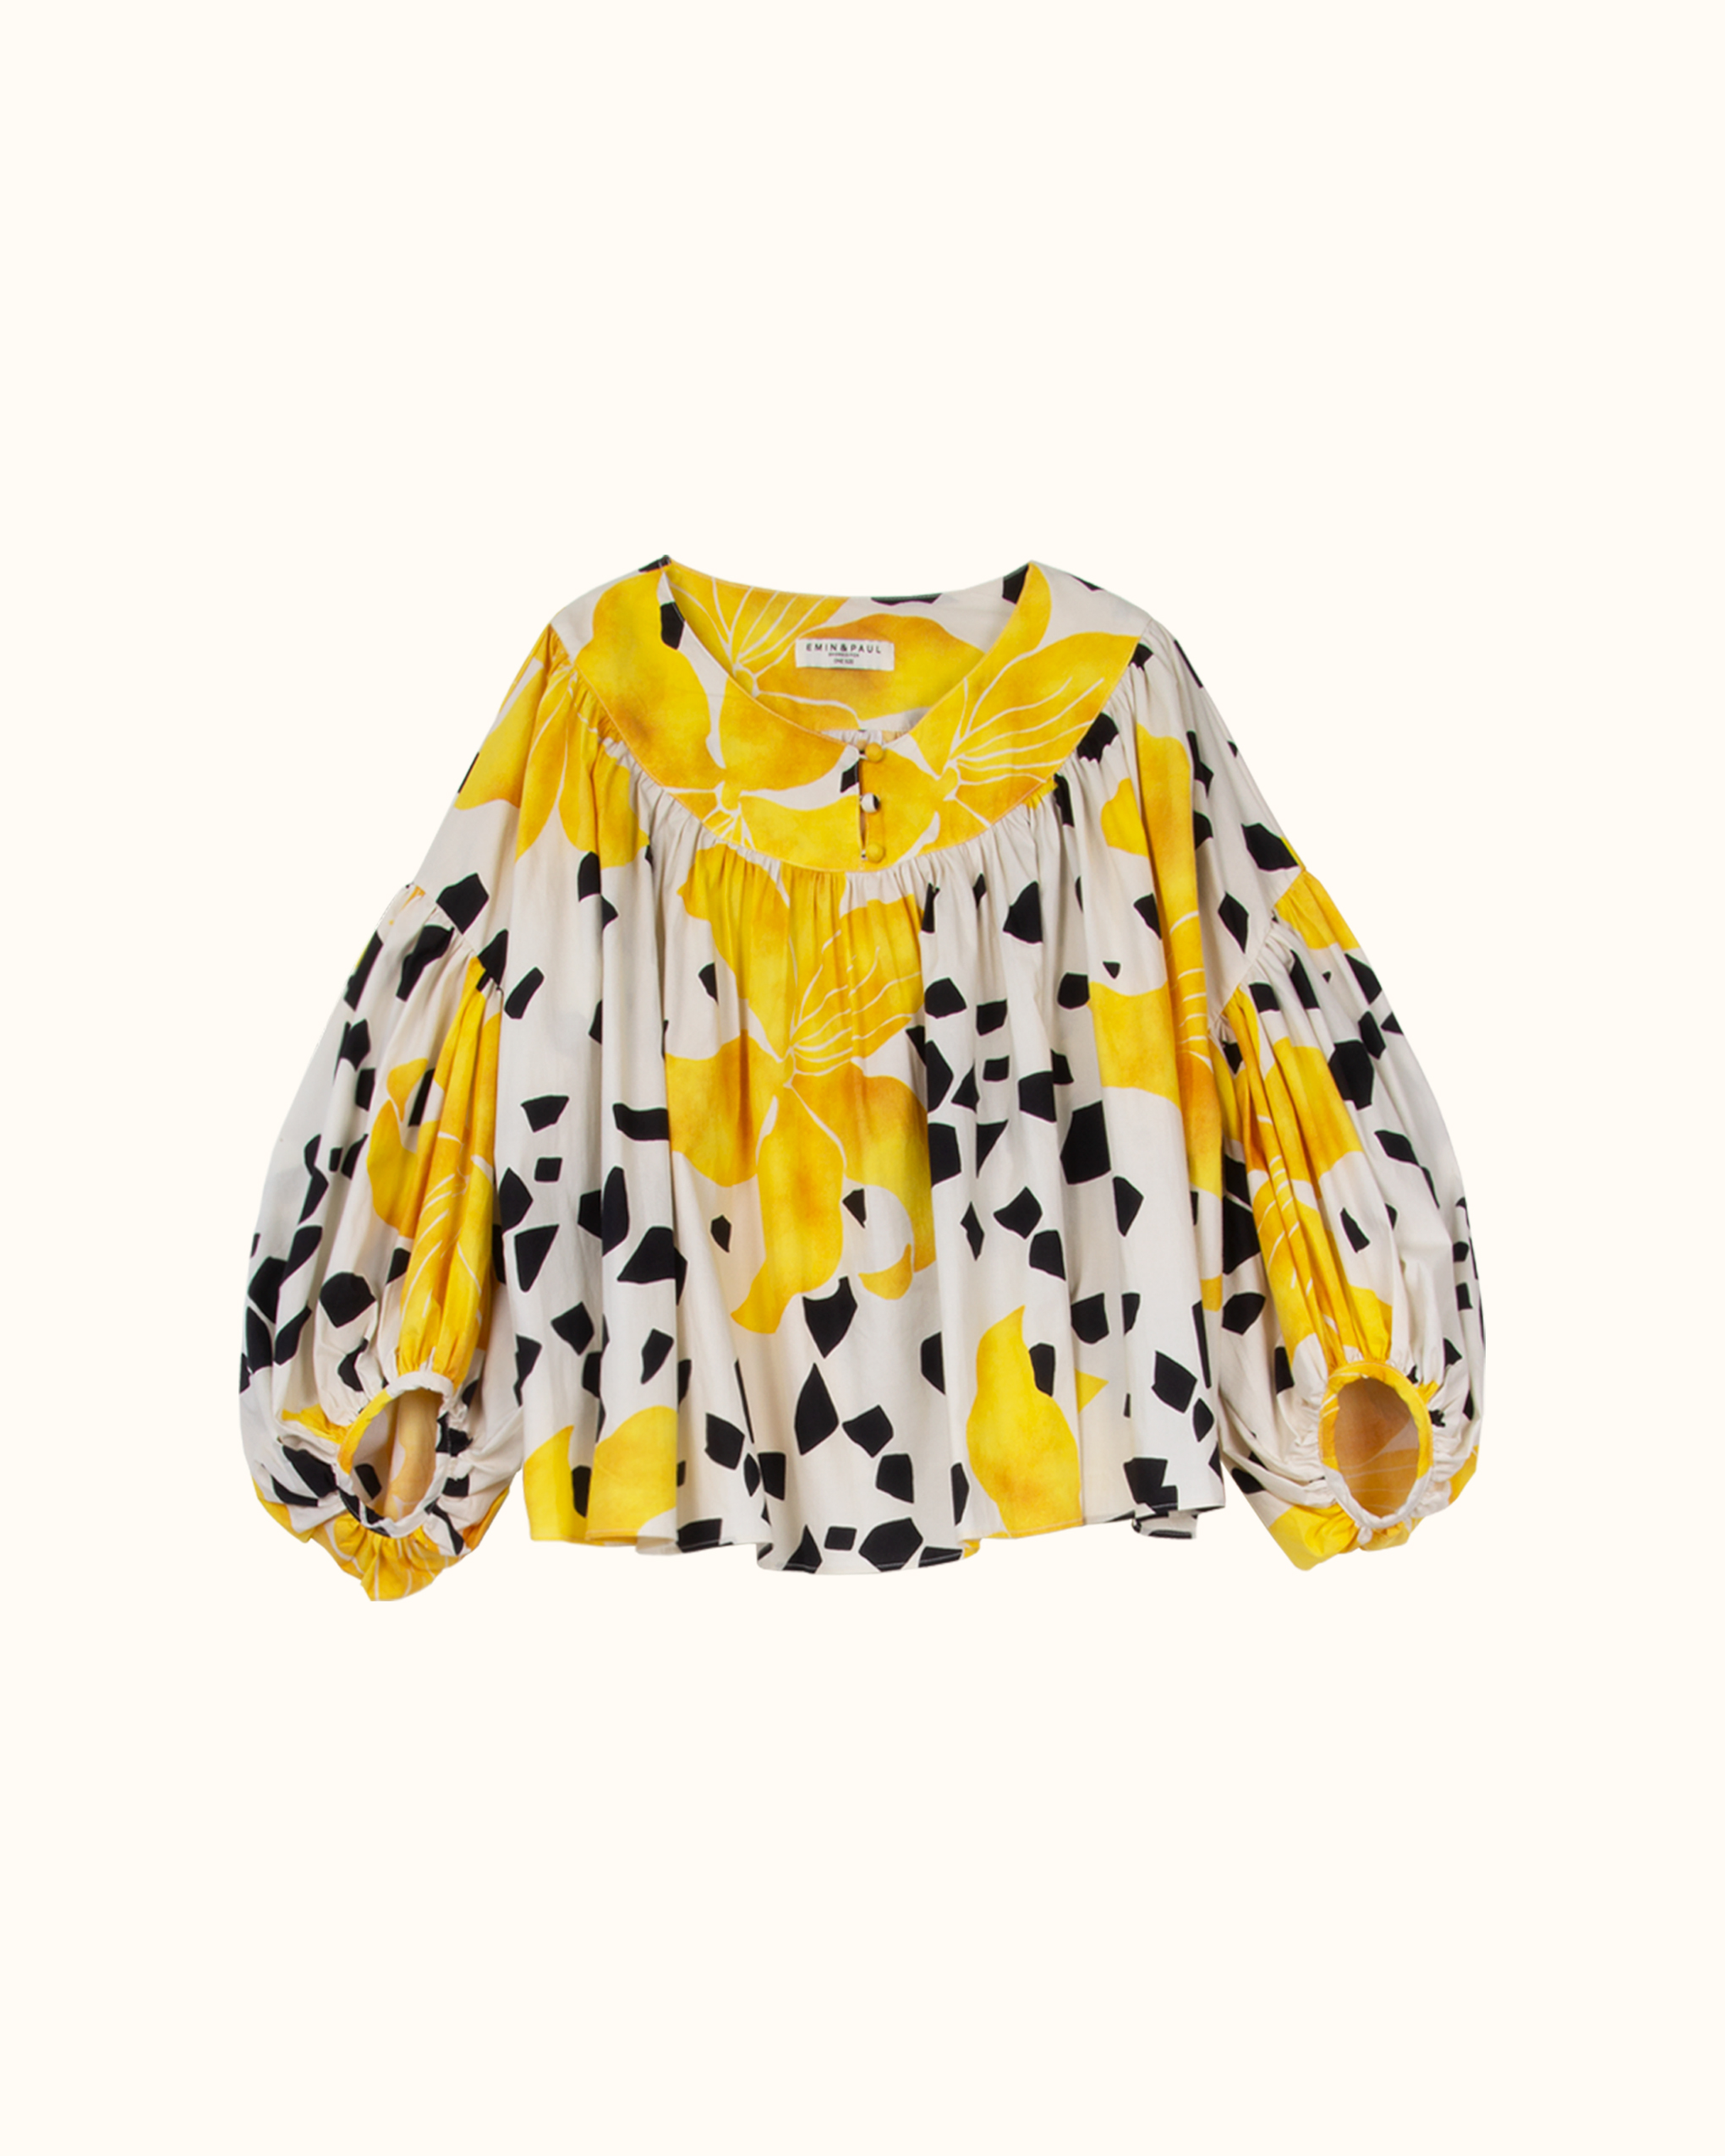 A yellow flower and black dot pattern blouse.